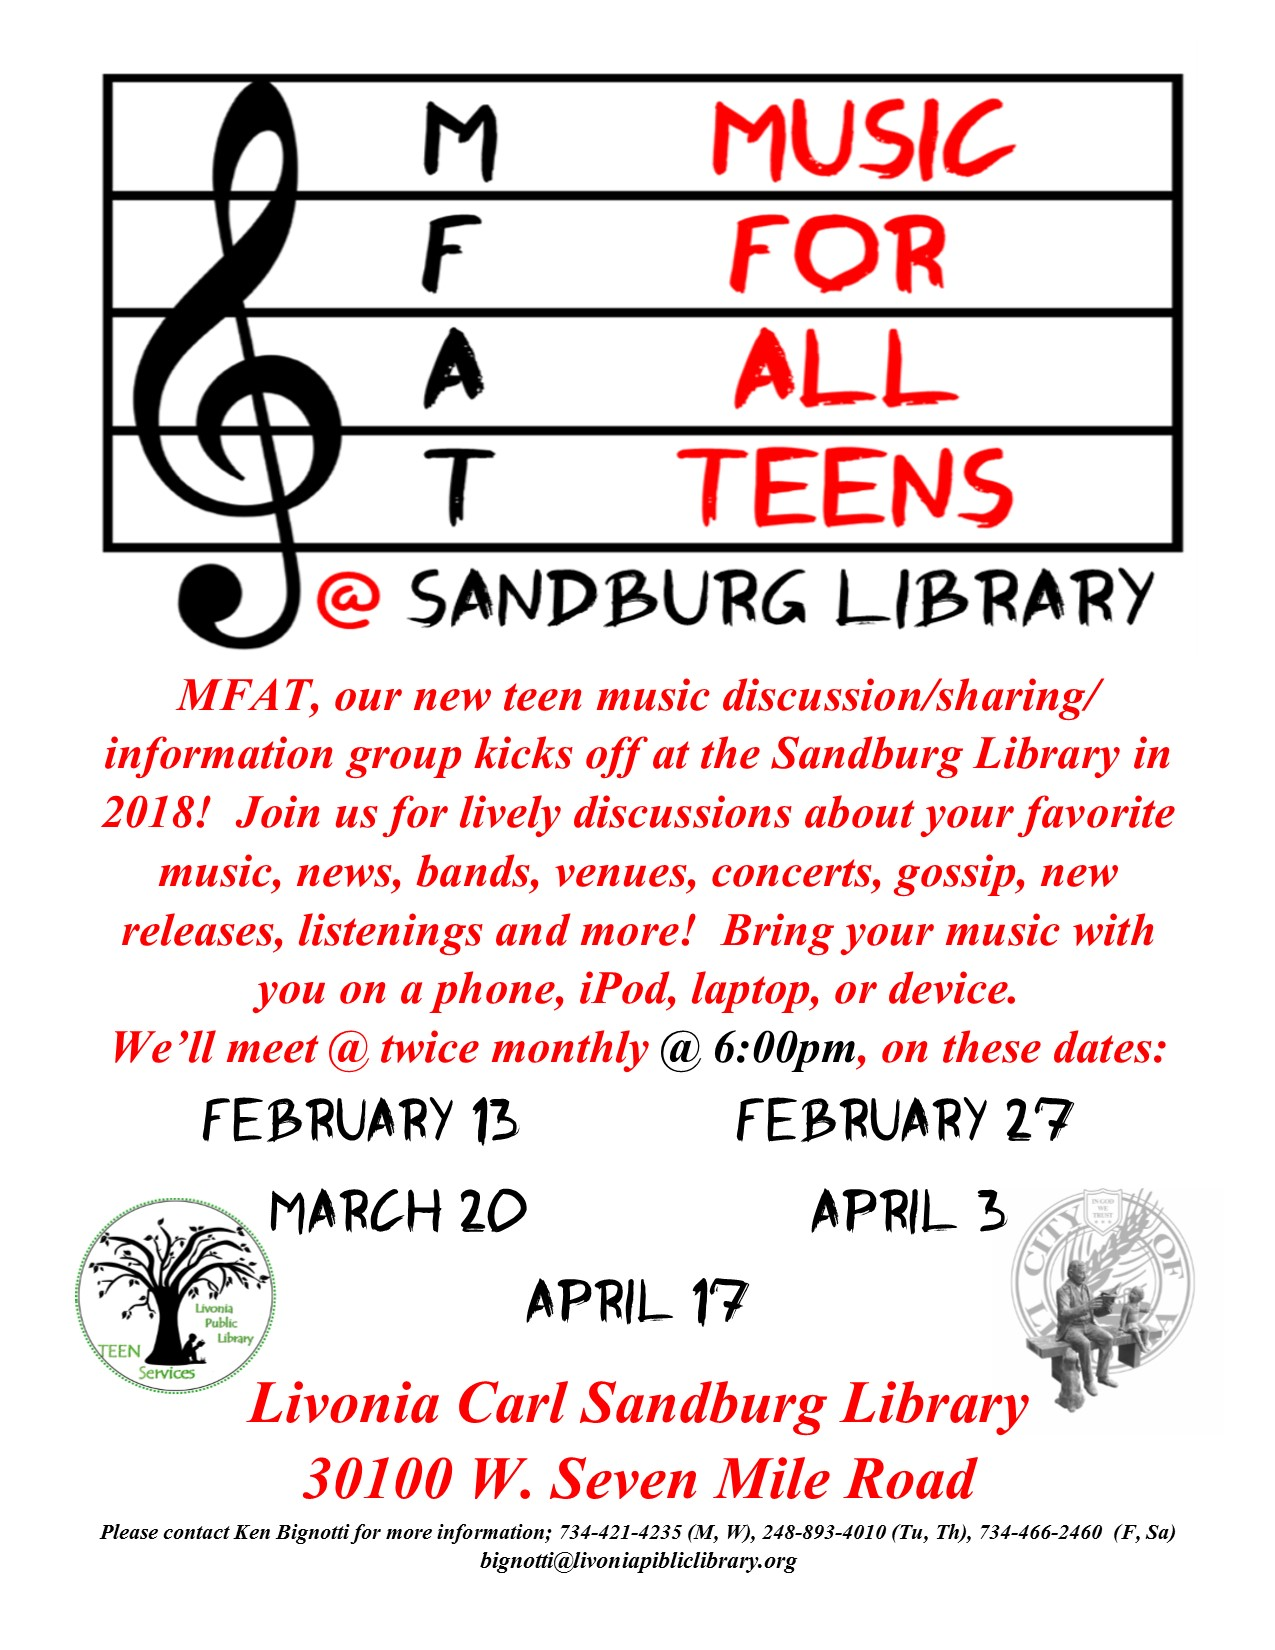 MFAT! Music for all Teens Music Club @ Sandburg Library